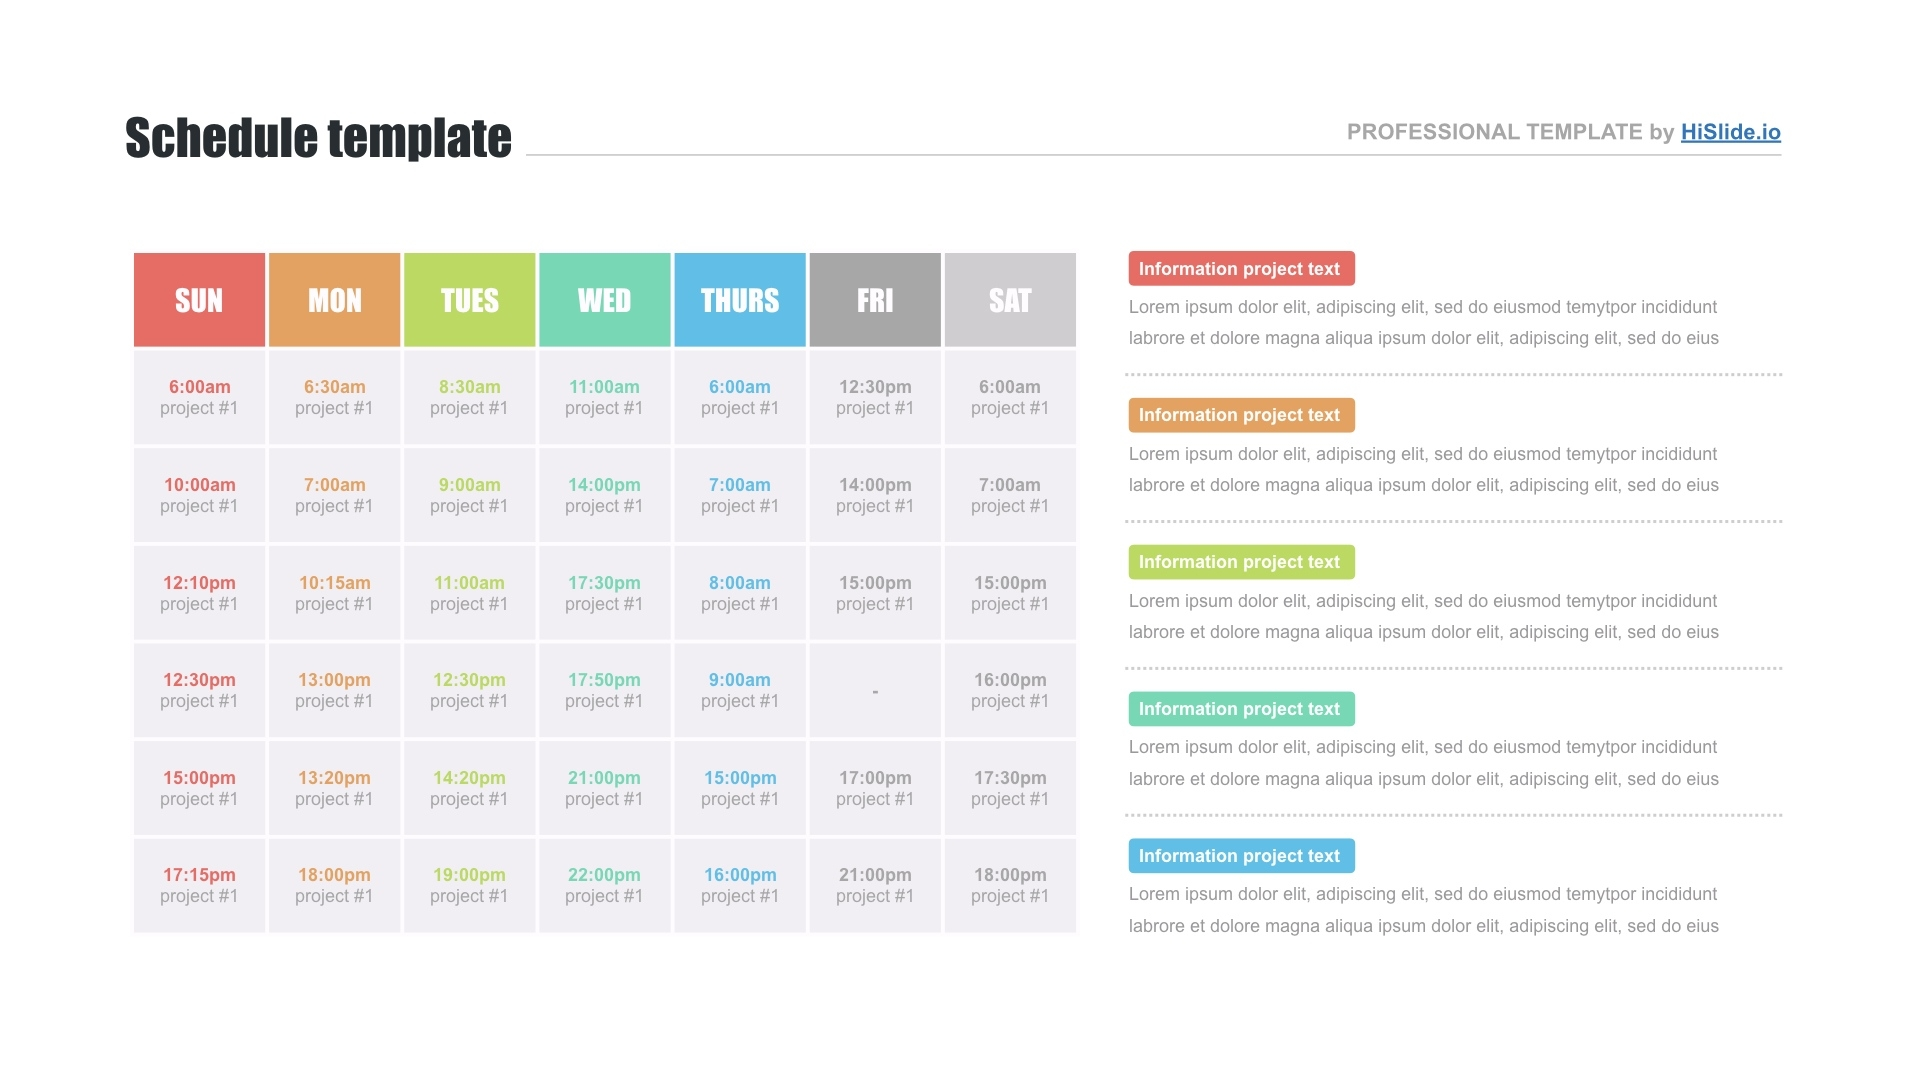 Free Schedule Template For Keynote - Download Now! Free Keynote Calendar Template